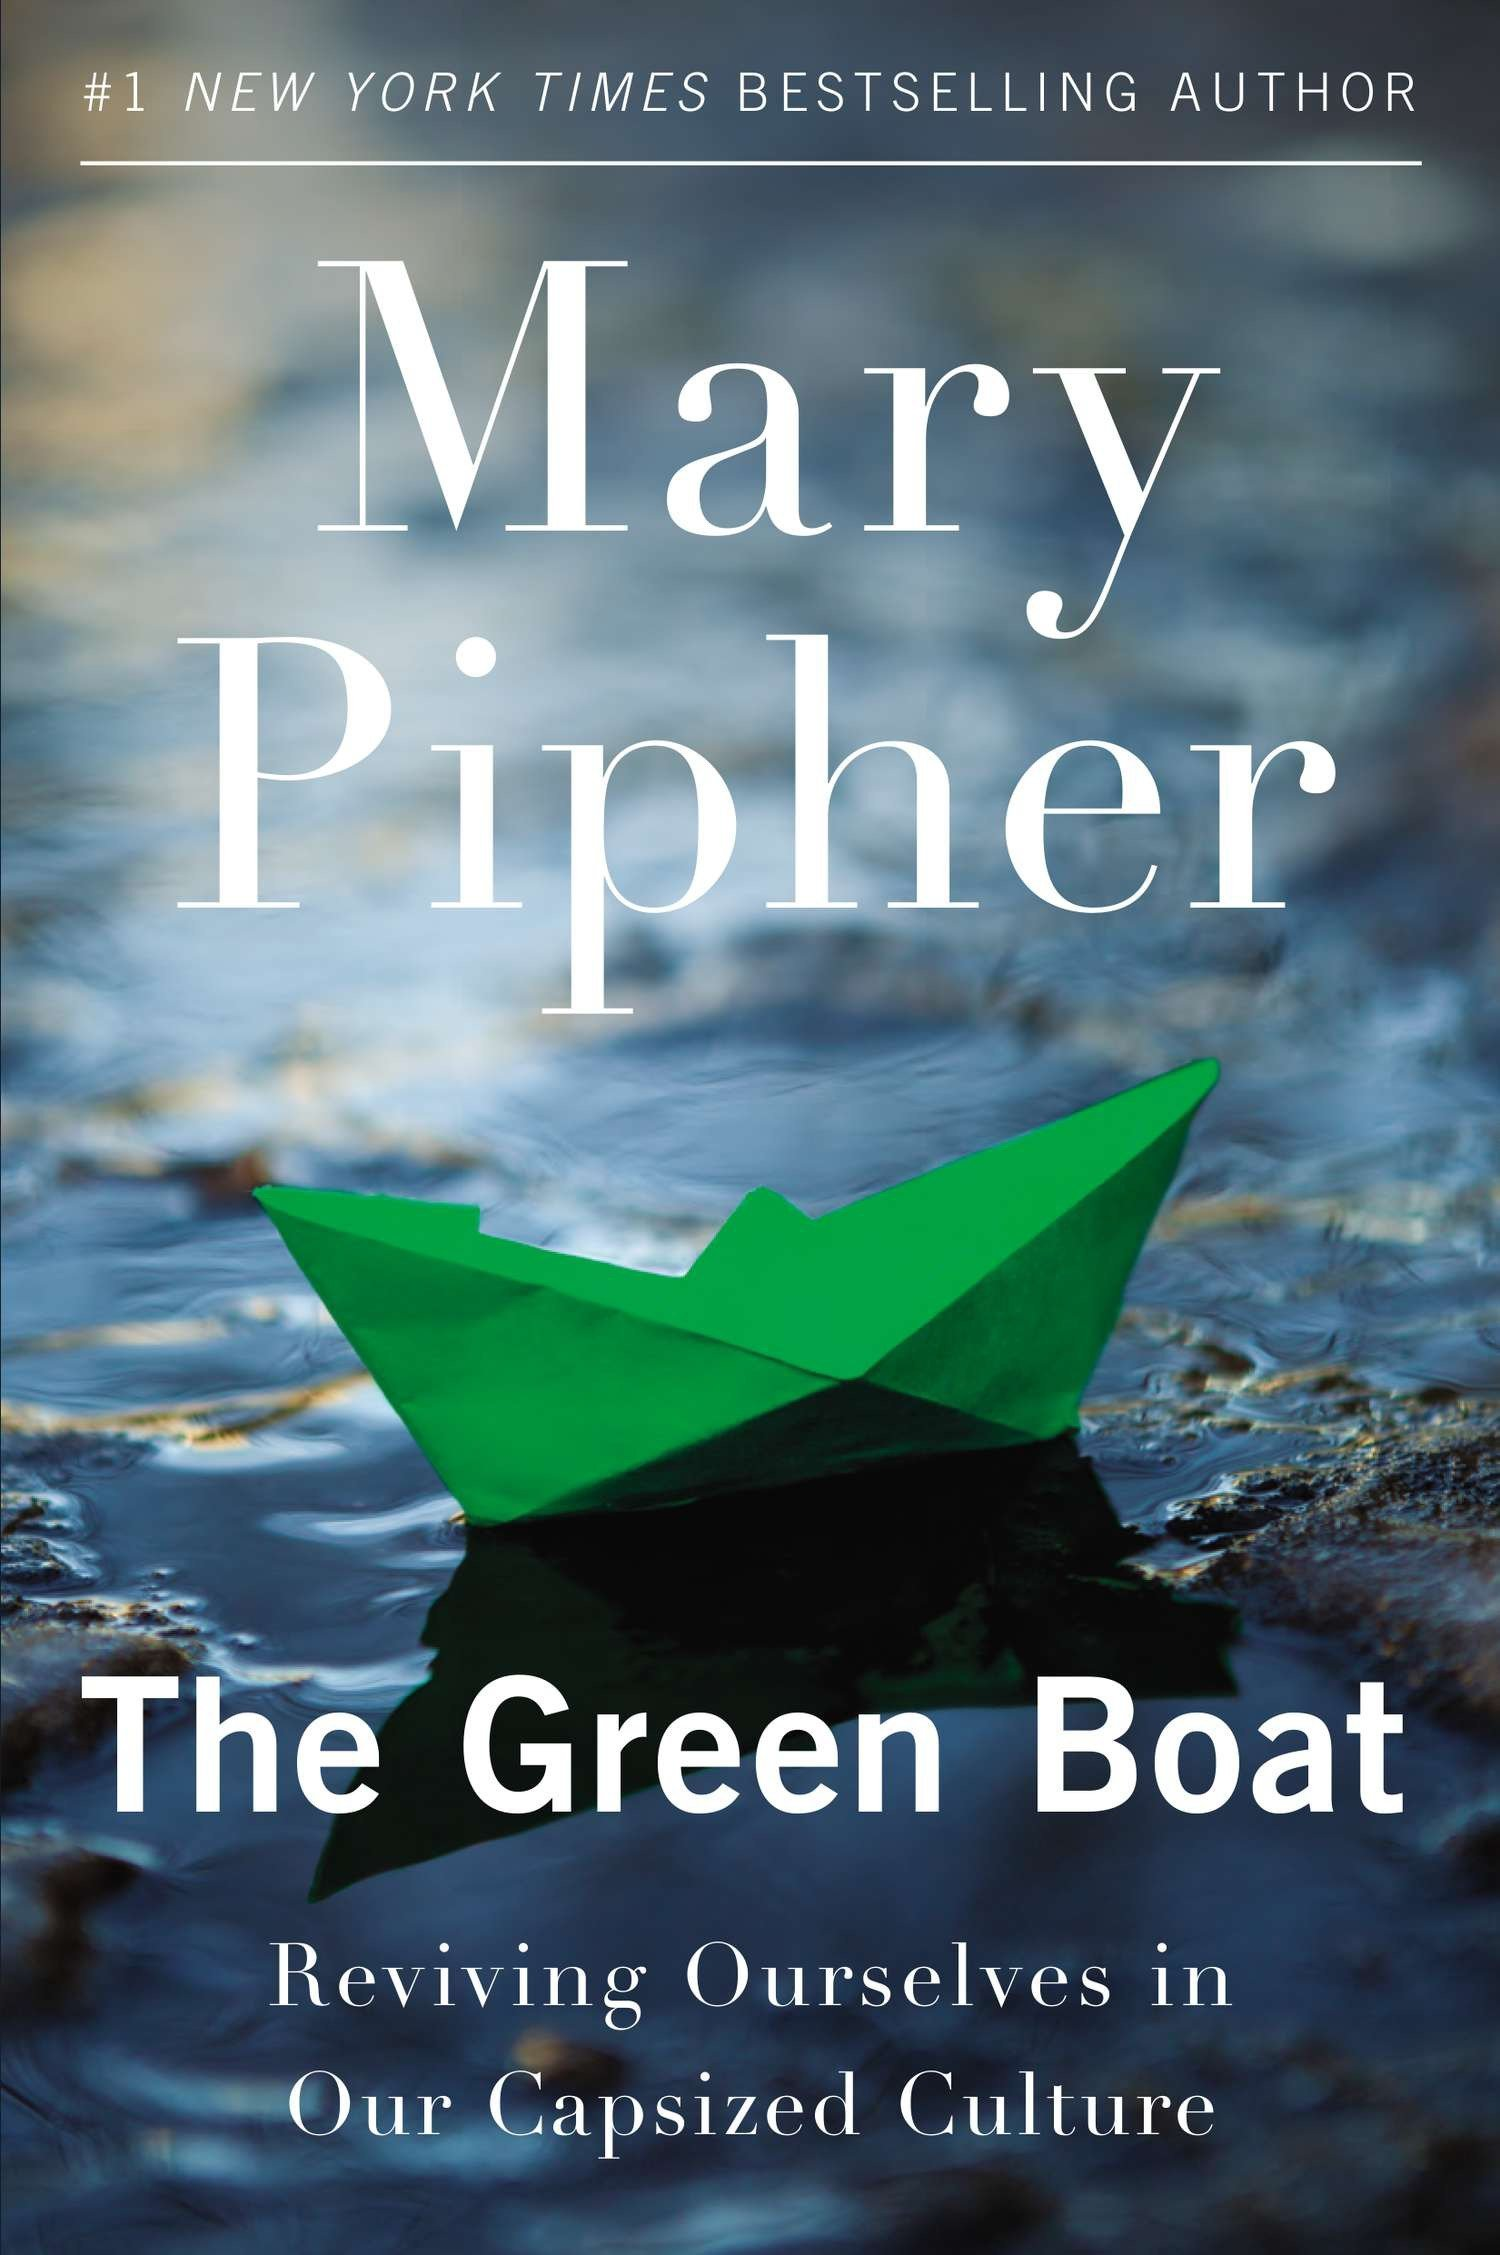 Top 10 Best the green boat